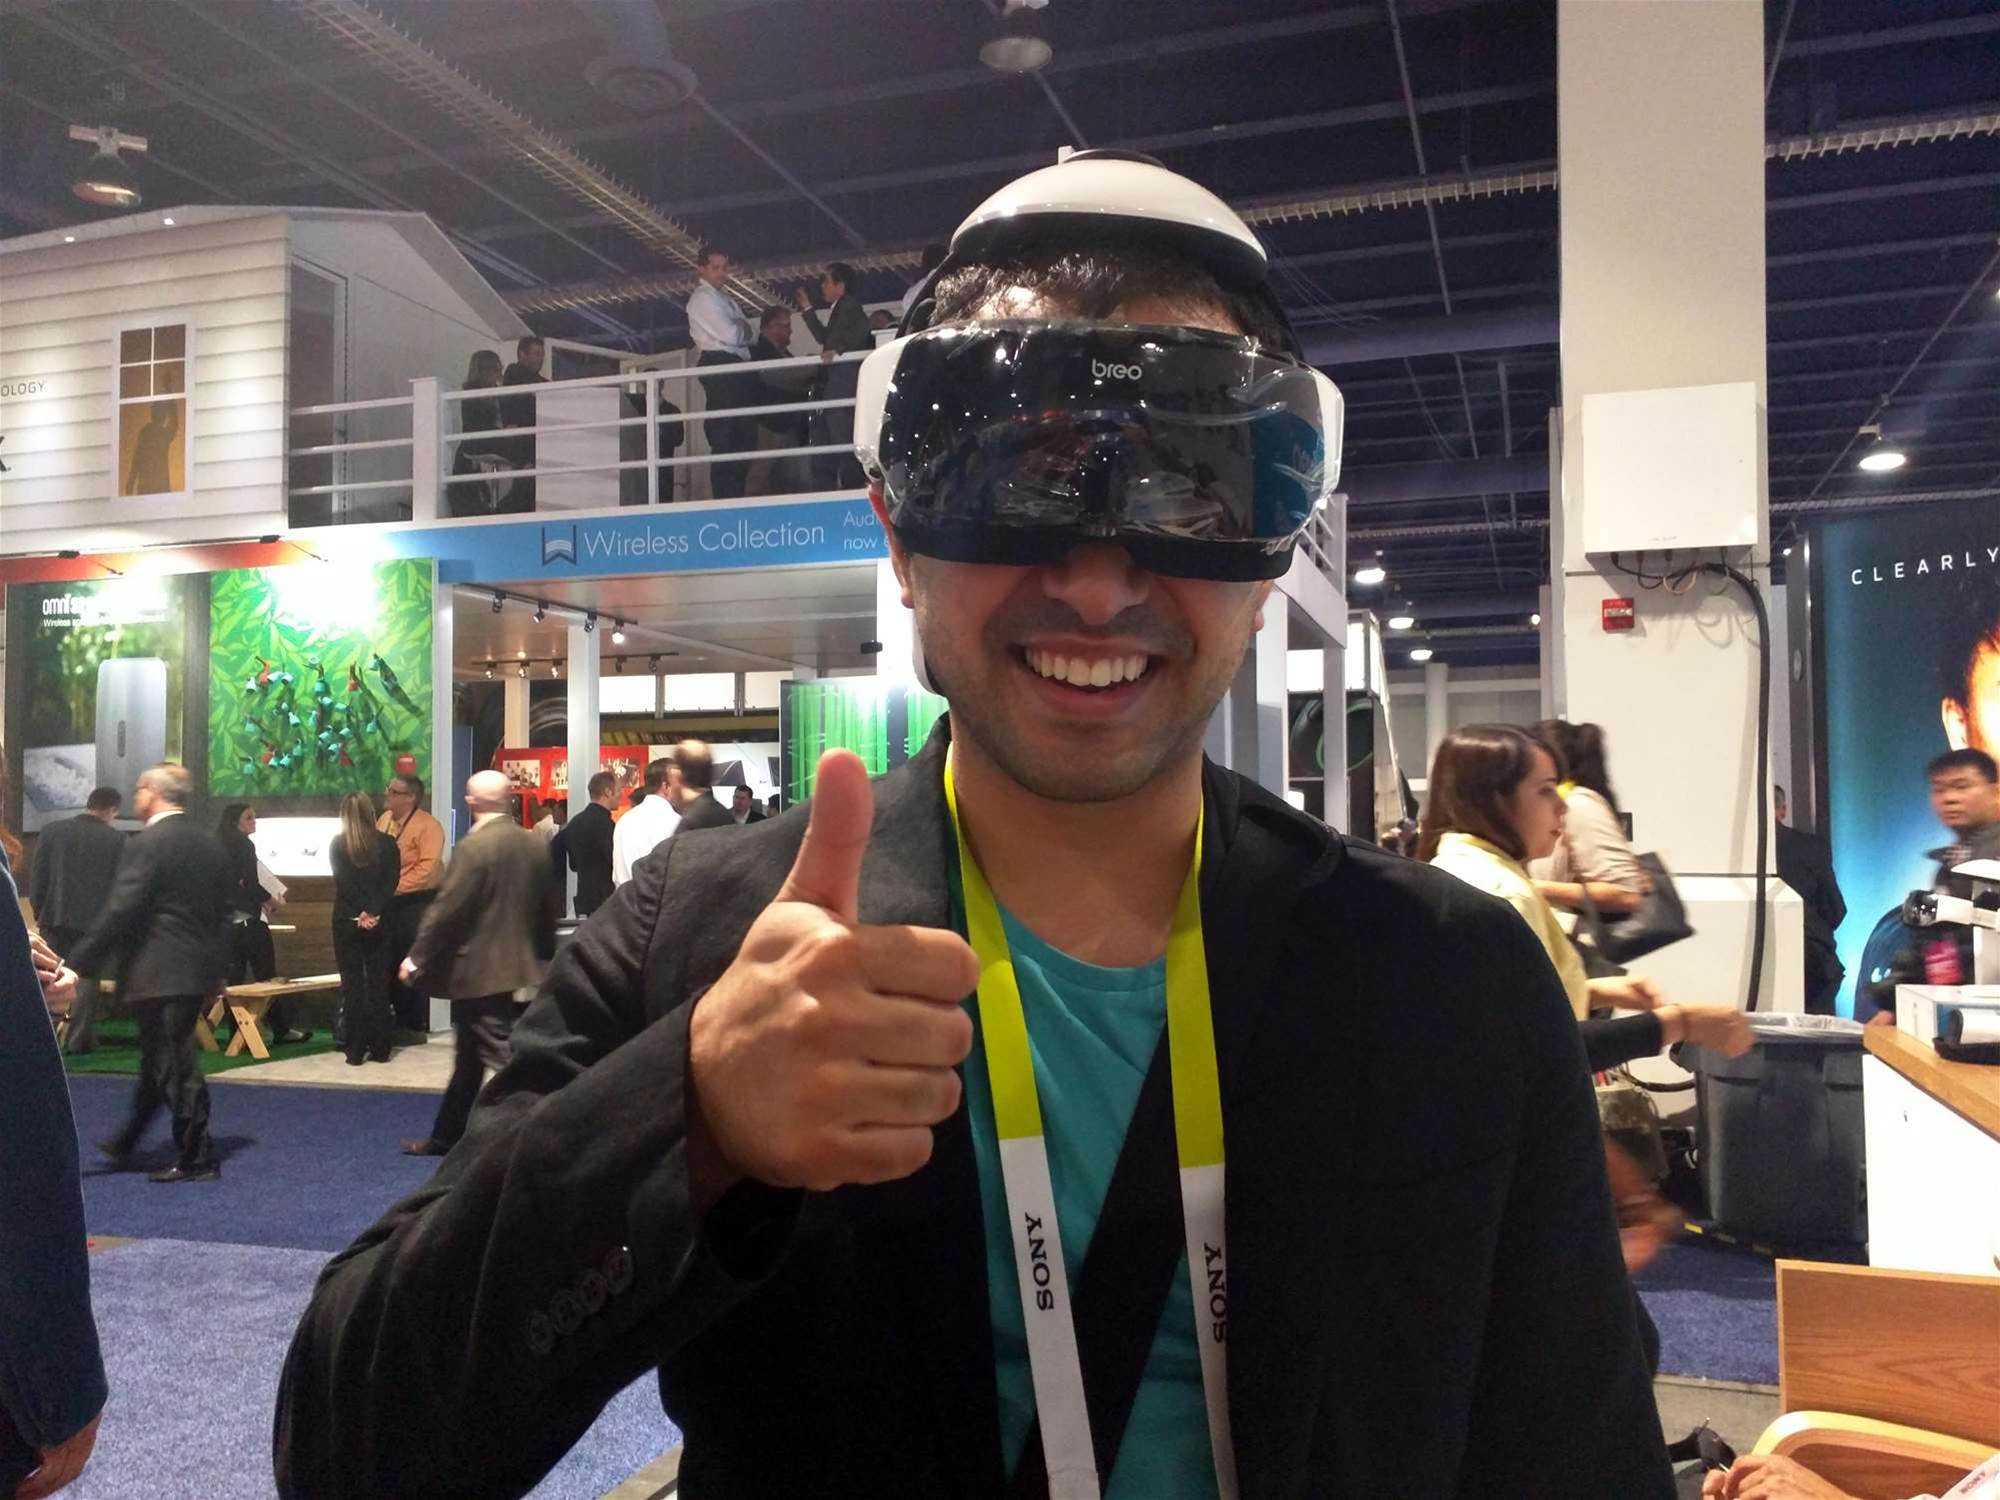 CES 2015: This Robotic Head and Eye Massager Is As Awkward As It Sounds